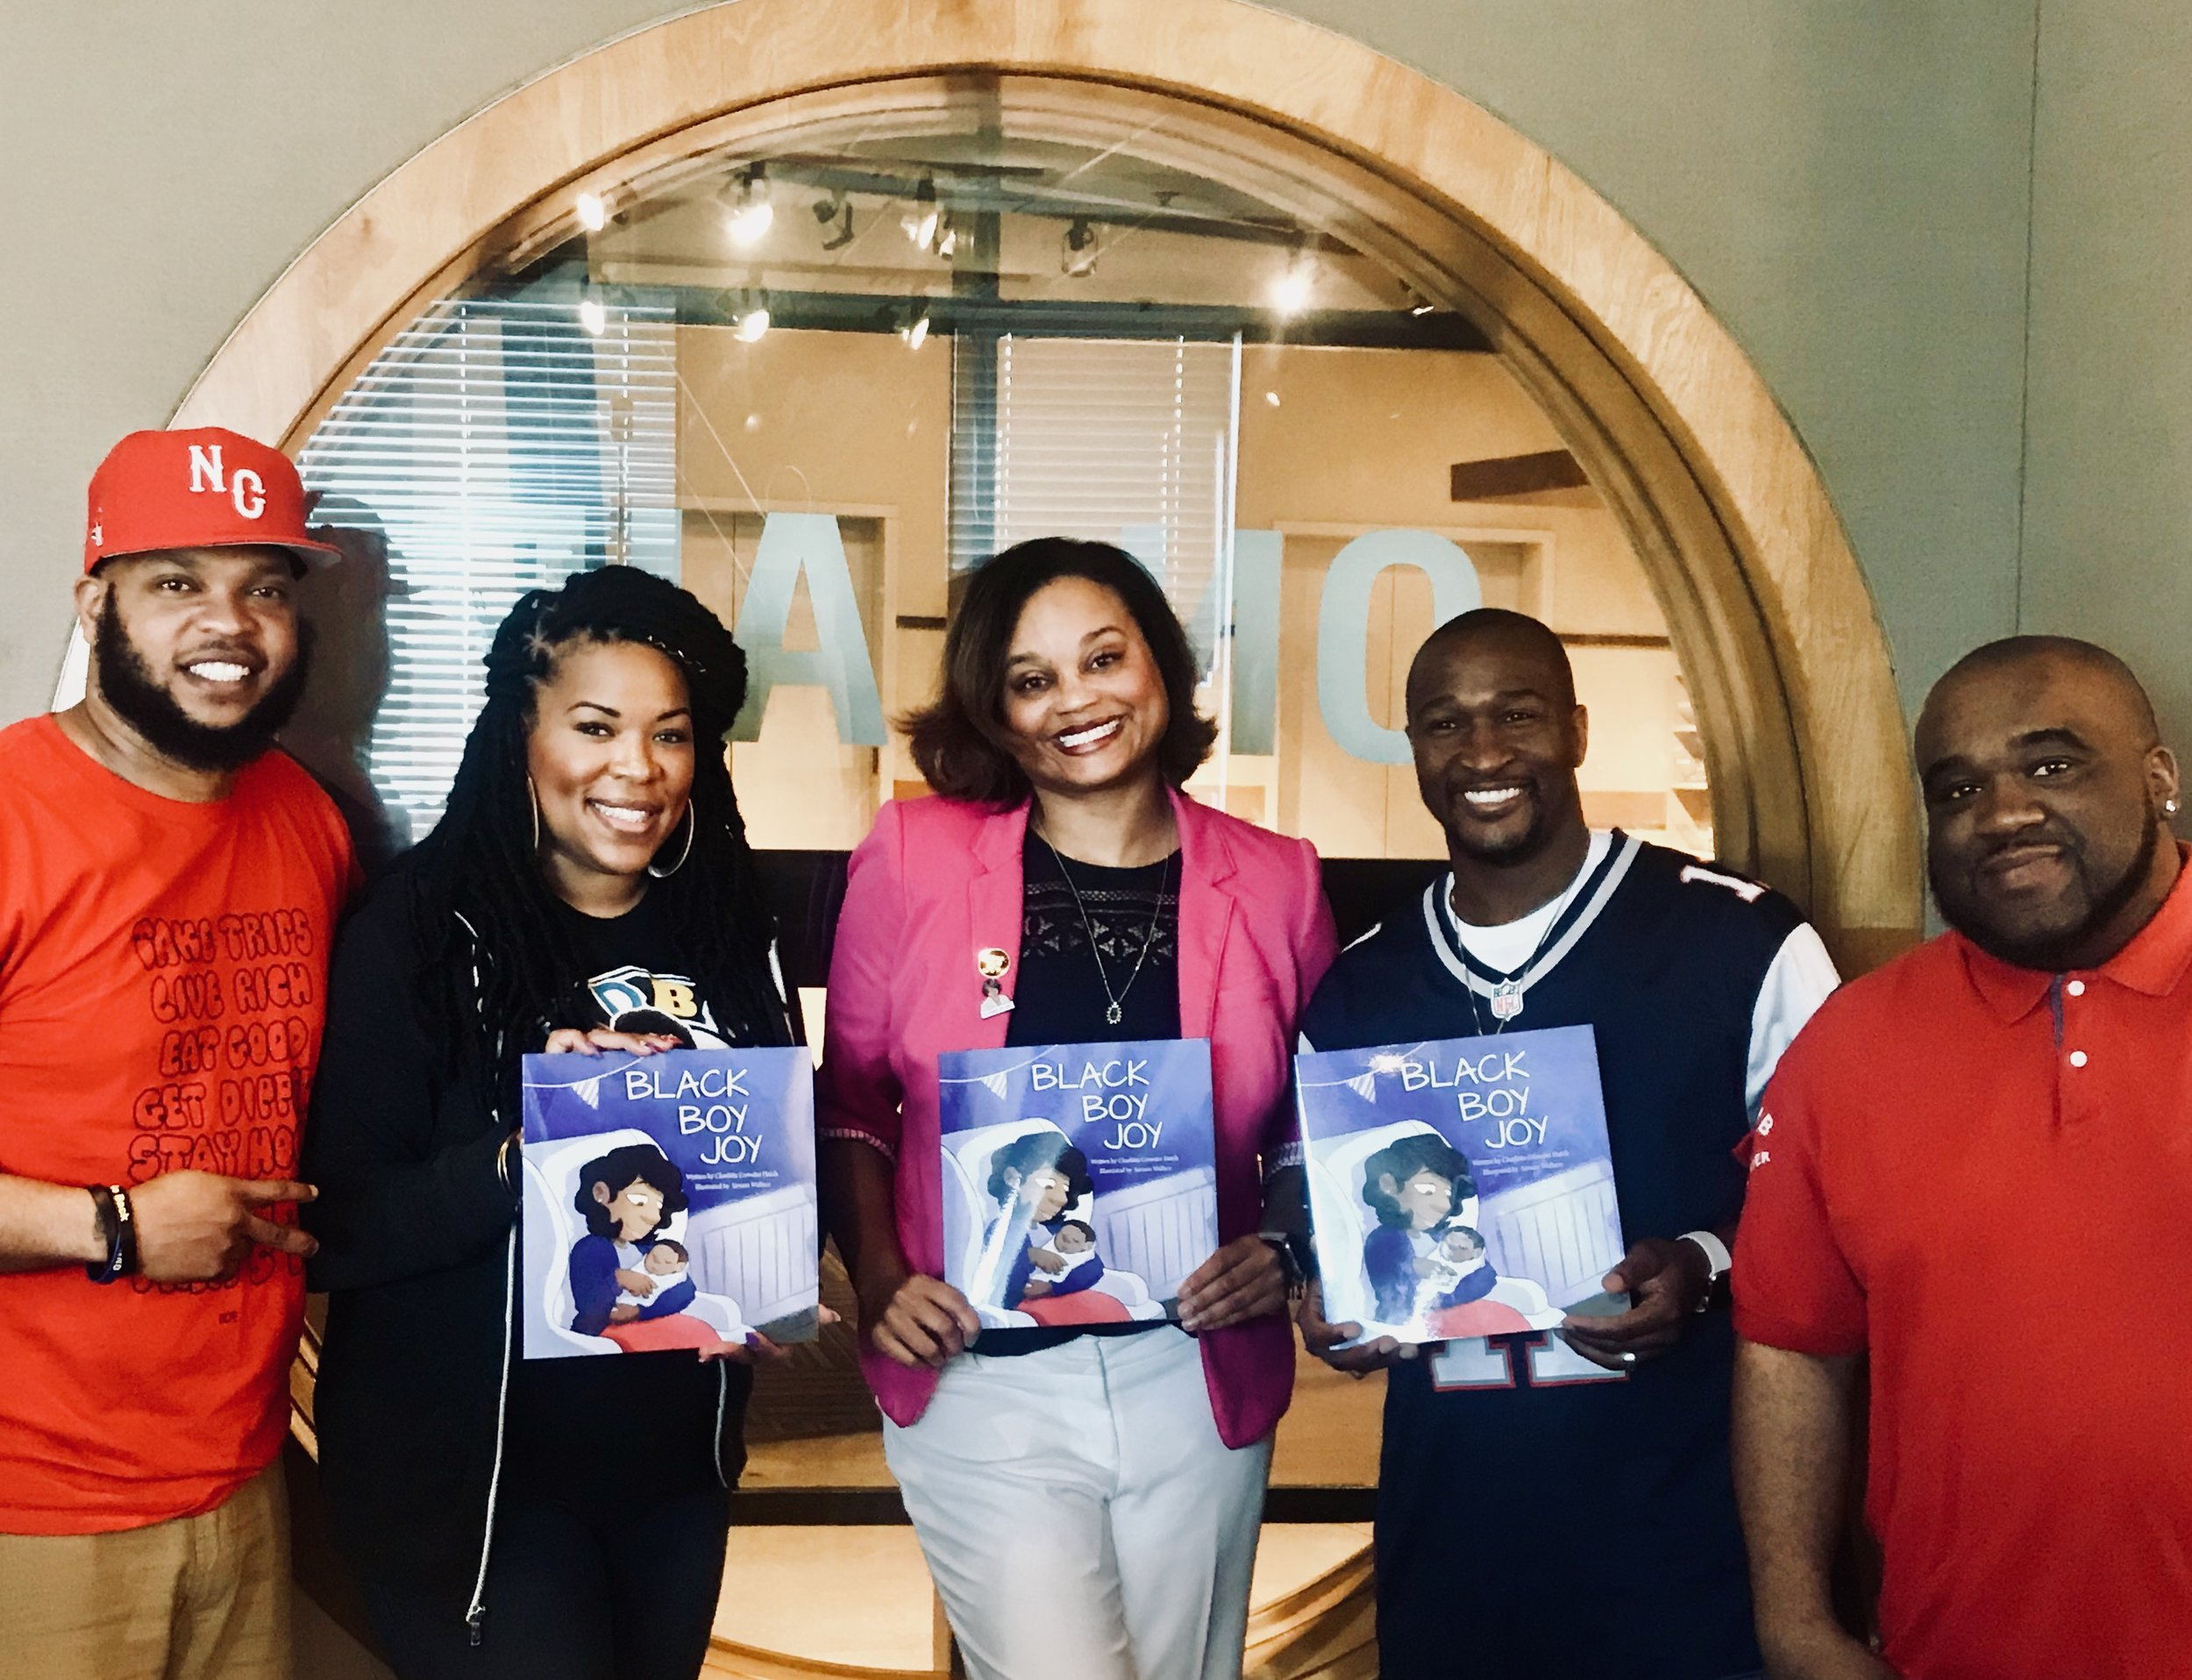 CMO Charlitta Hatch (@raisingblackboyjoy, center) featured on Working Woman Wednesday segment at WPEG Power 98 FM in Charlotte. Pictured here with the hosts of No Limit Larry & the Morning Madd House (from left): Comedian Burpie (@iamburpie), Ms. Jessica the Girl Next Door (@heymsjessica), No Limit Larry (@noleezy) and Mr. Incognito (@incognito98) -  May 2018